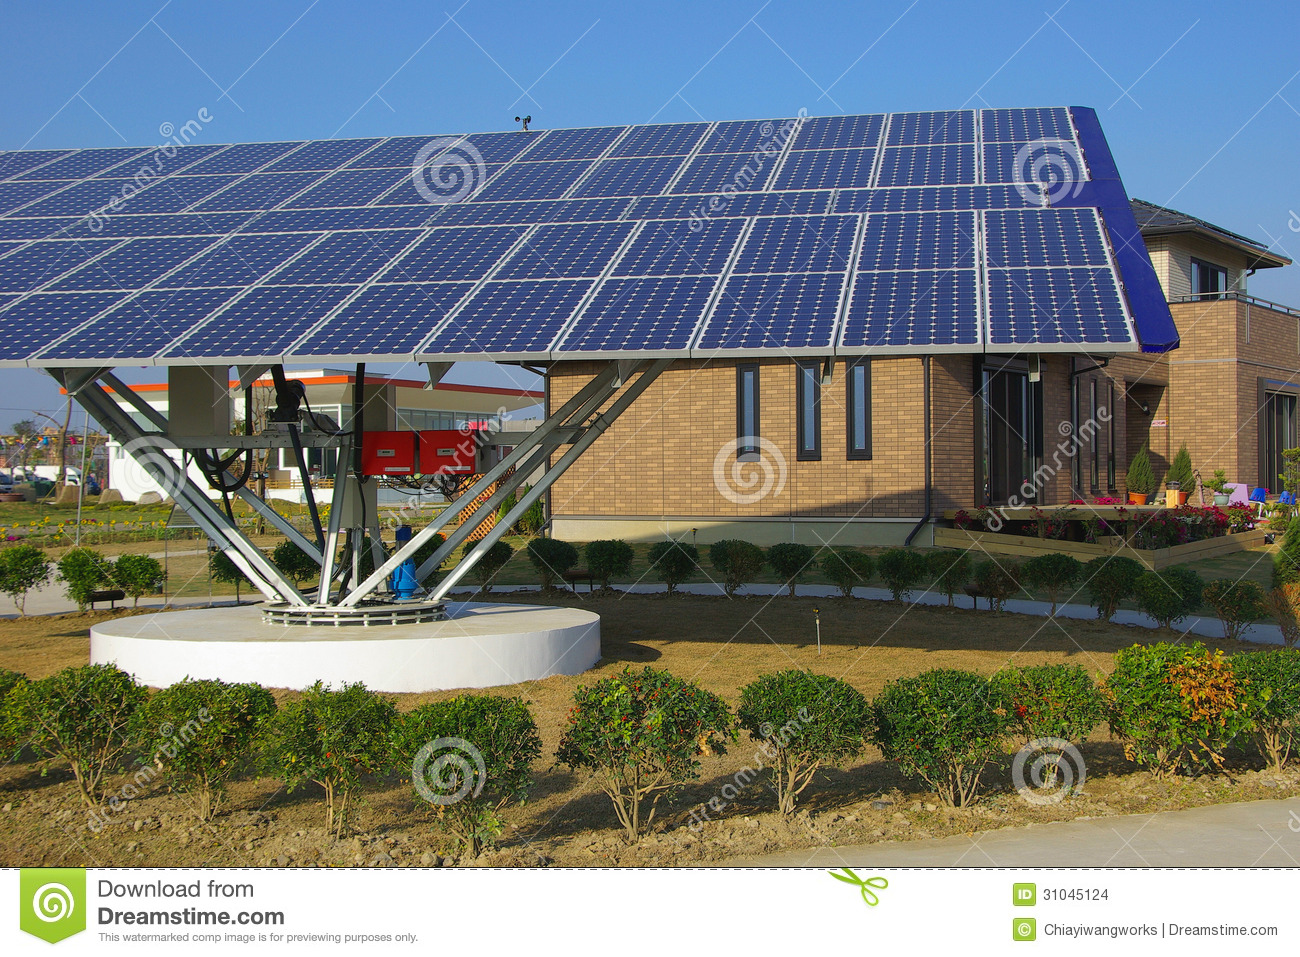 The Contemporary Solar energy equipment with Solar panels.